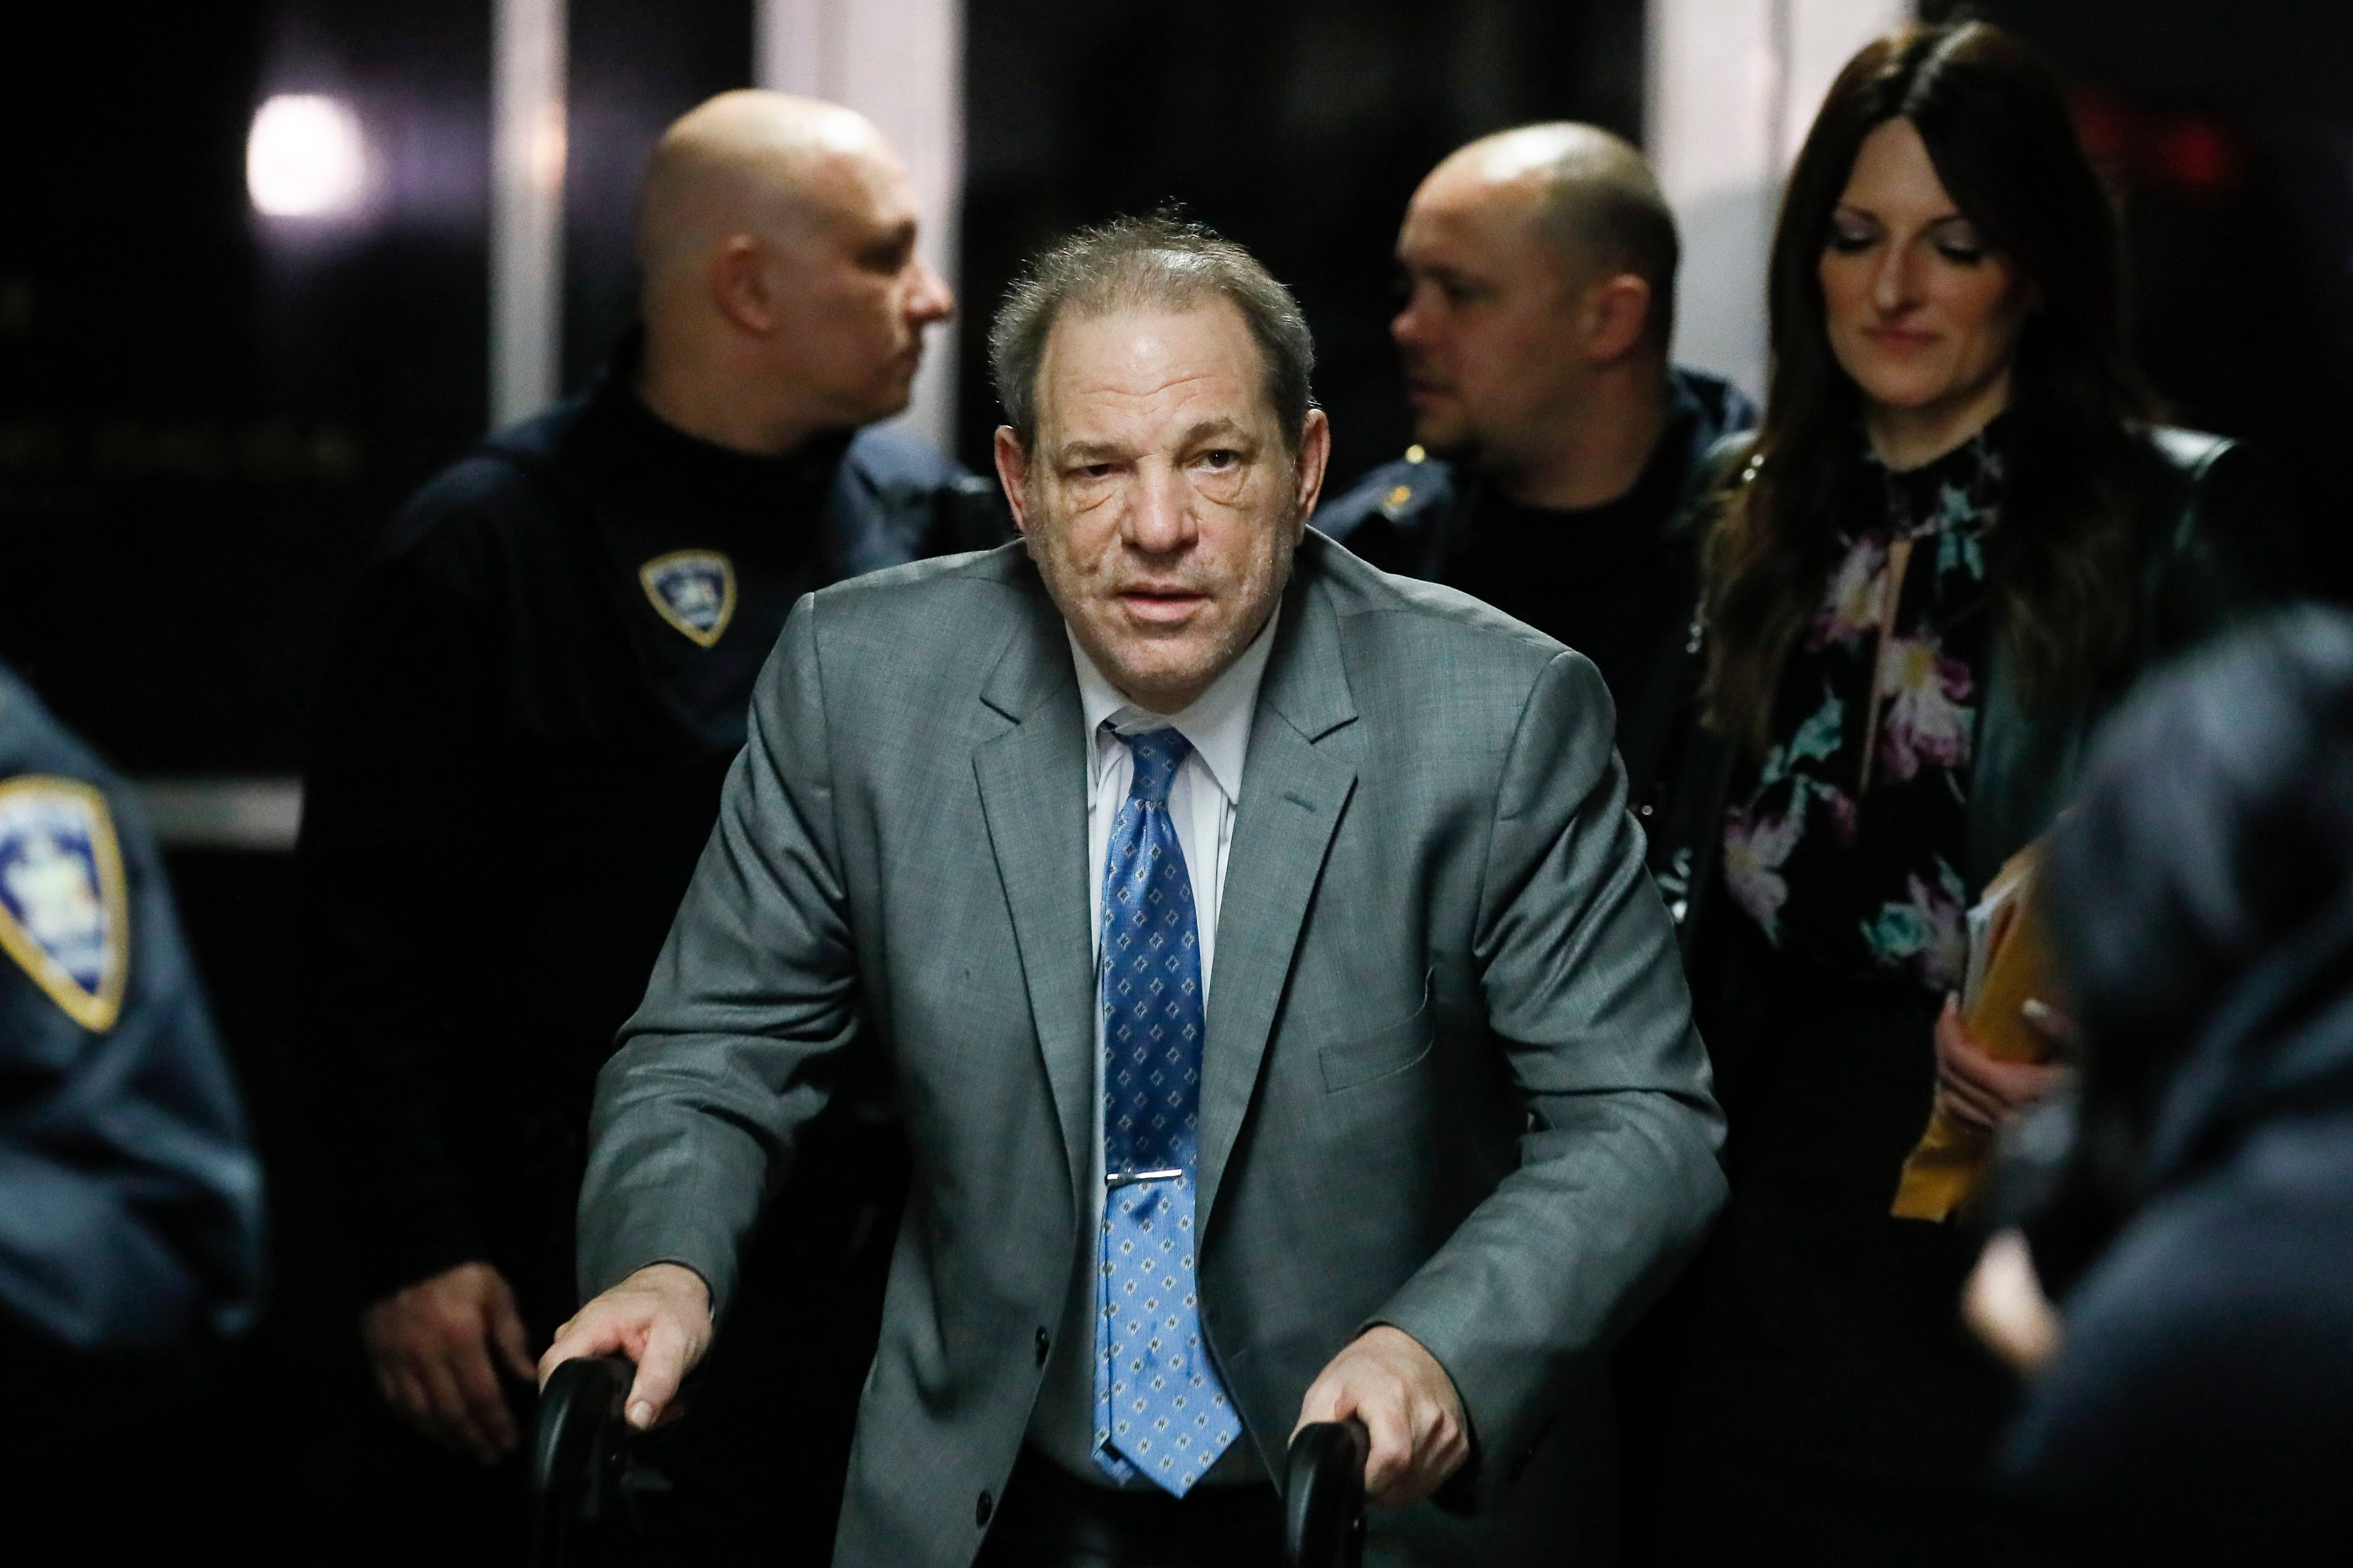 Harvey Weinstein leaves a Manhattan courthouse during his rape trial, in New YorkSexual Misconduct Weinstein, New York, USA - 18 Feb 2020